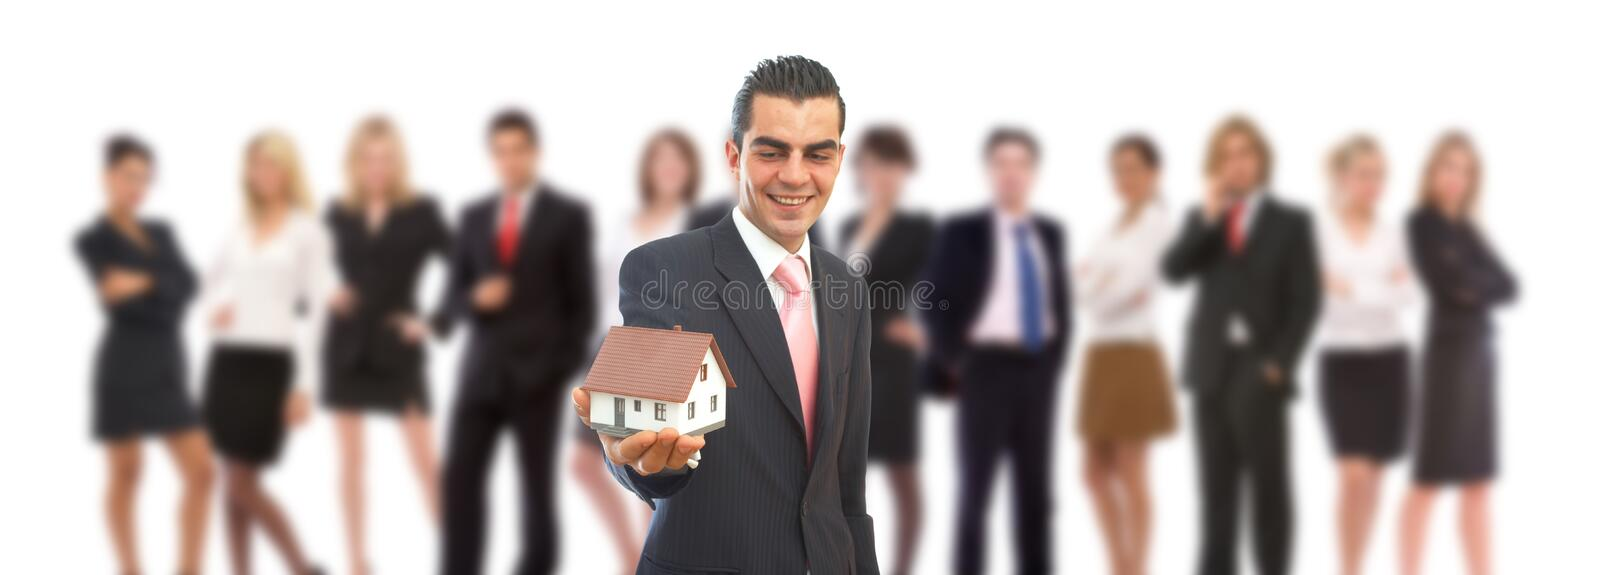 Real estate in business royalty free stock photos